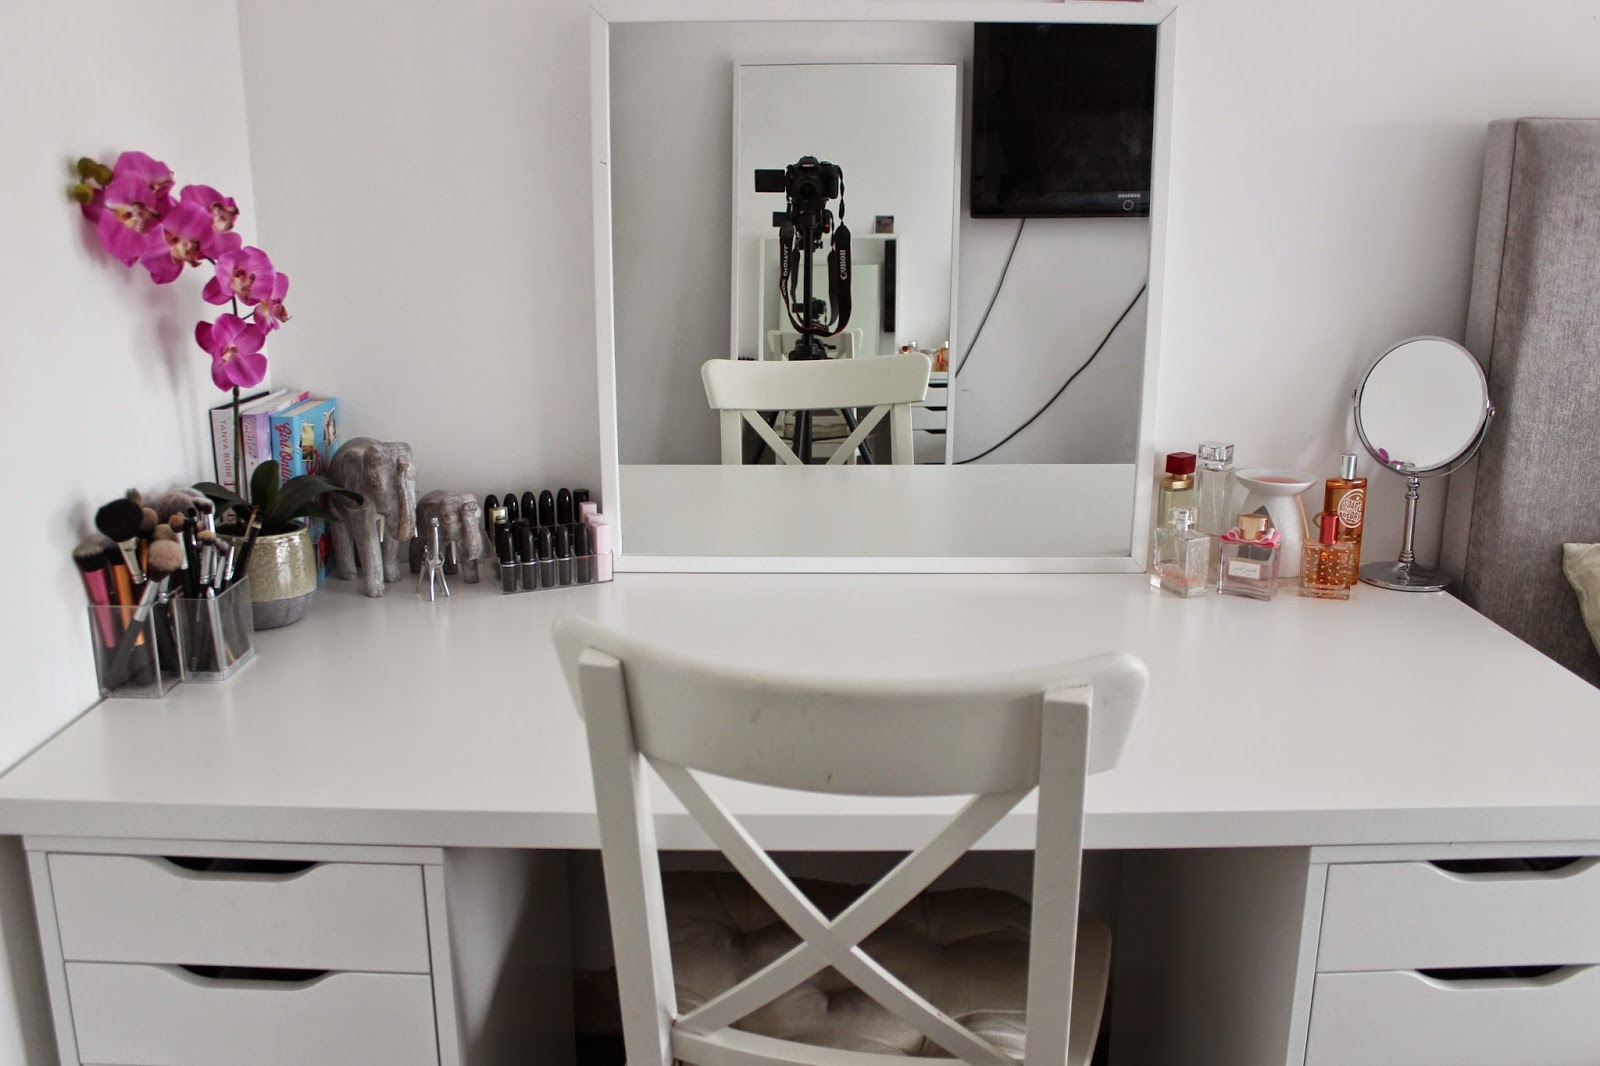 e h my makeup desk storage and organisation. Black Bedroom Furniture Sets. Home Design Ideas